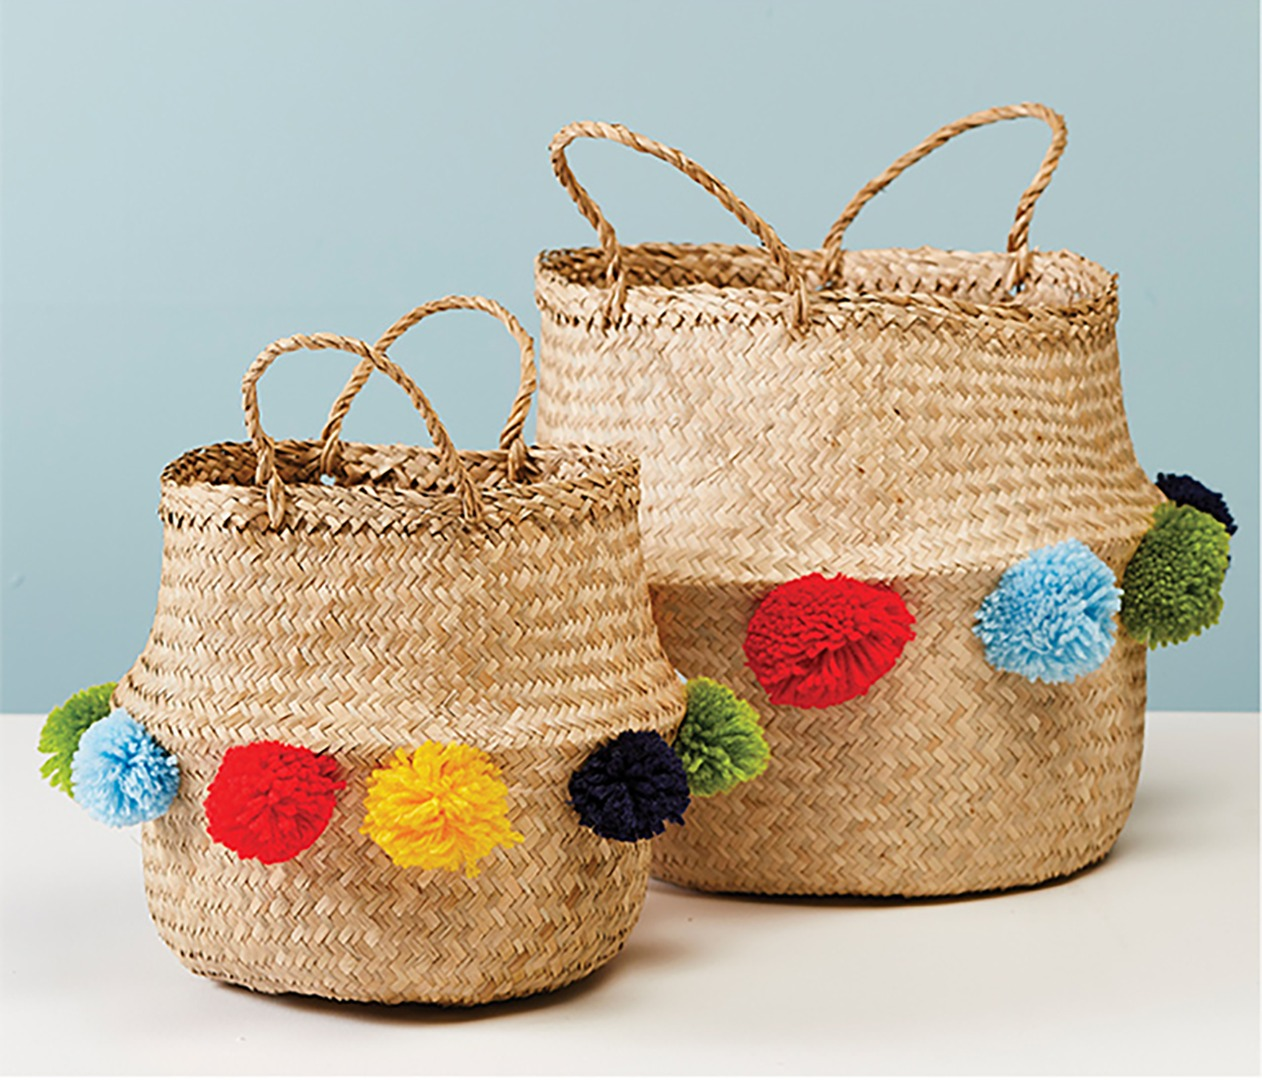 Natural Seagrass Basket with Giant Pom-Pom edging  2 sizes